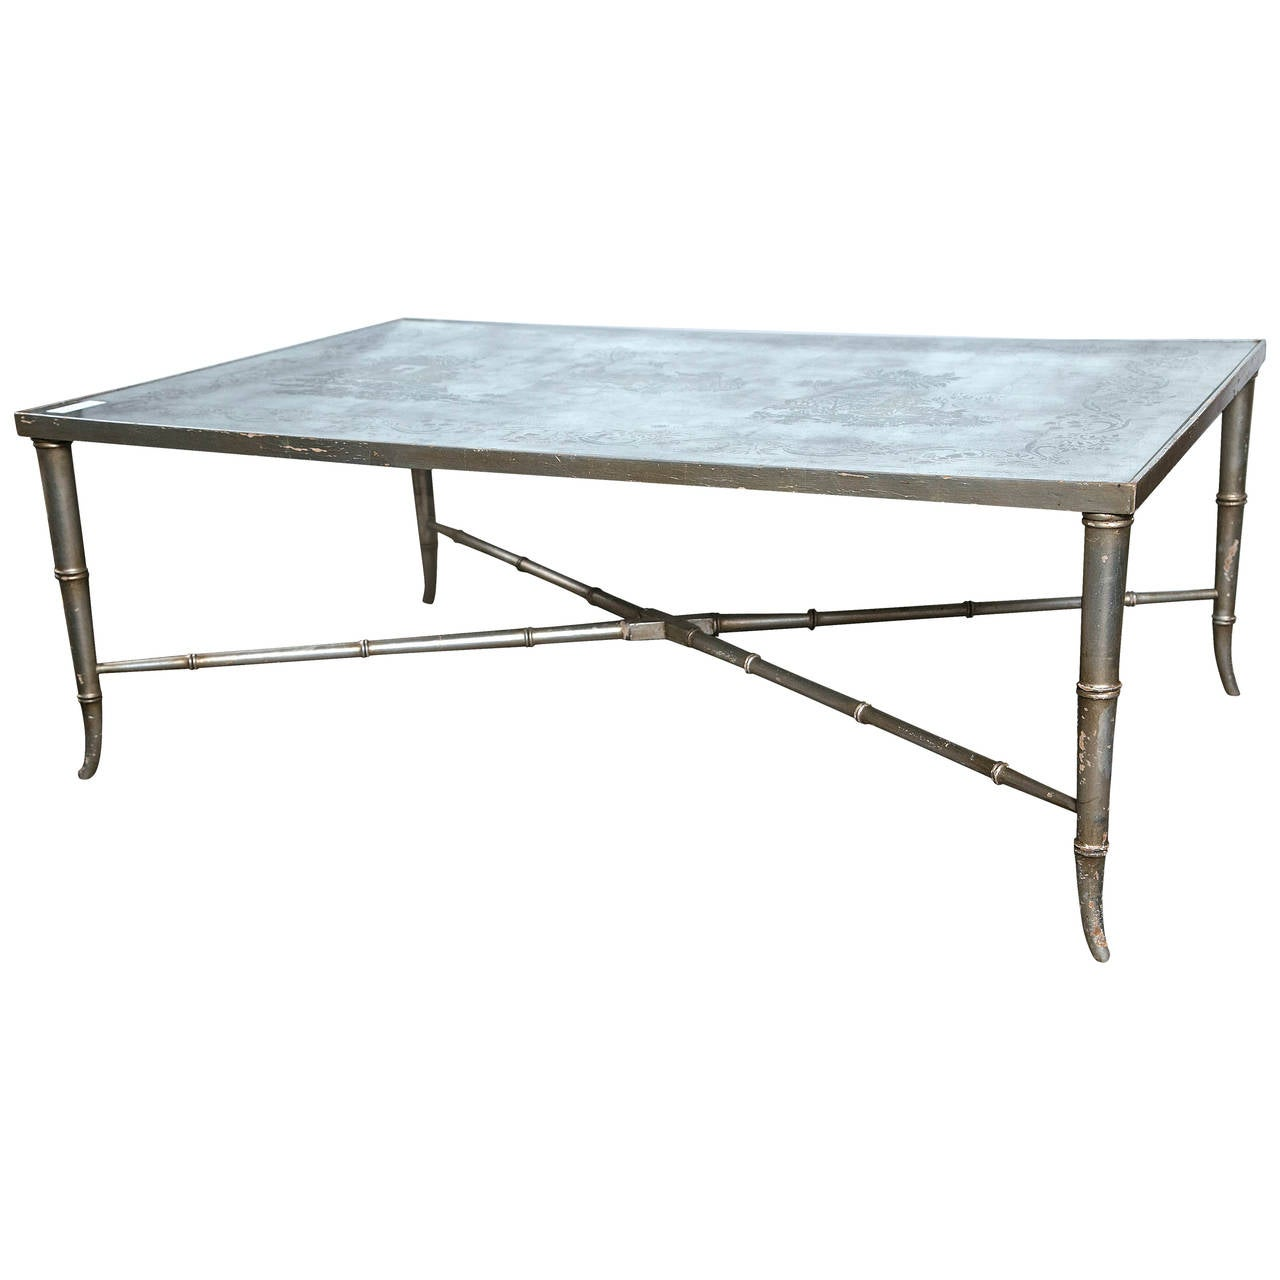 Glomis Chinoiserie Glass Top Coffee Table By Maison Jansen At 1stdibs